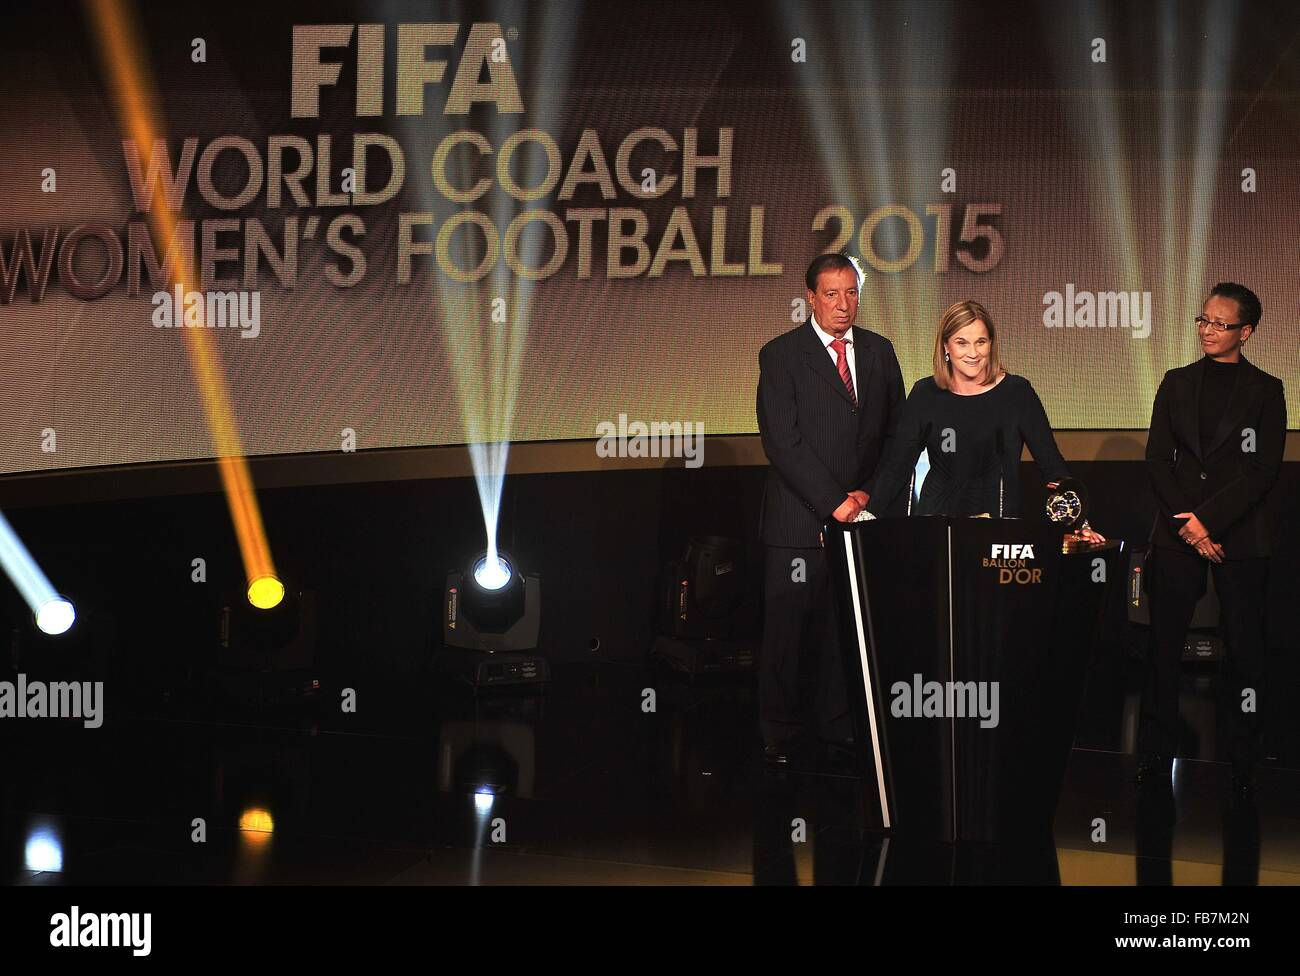 Zurich, Switzerland. 11th Jan, 2016. JILL ELLIS (USA) poses with the trophy of 2015 FIFA World Coach of the Year Stock Photo